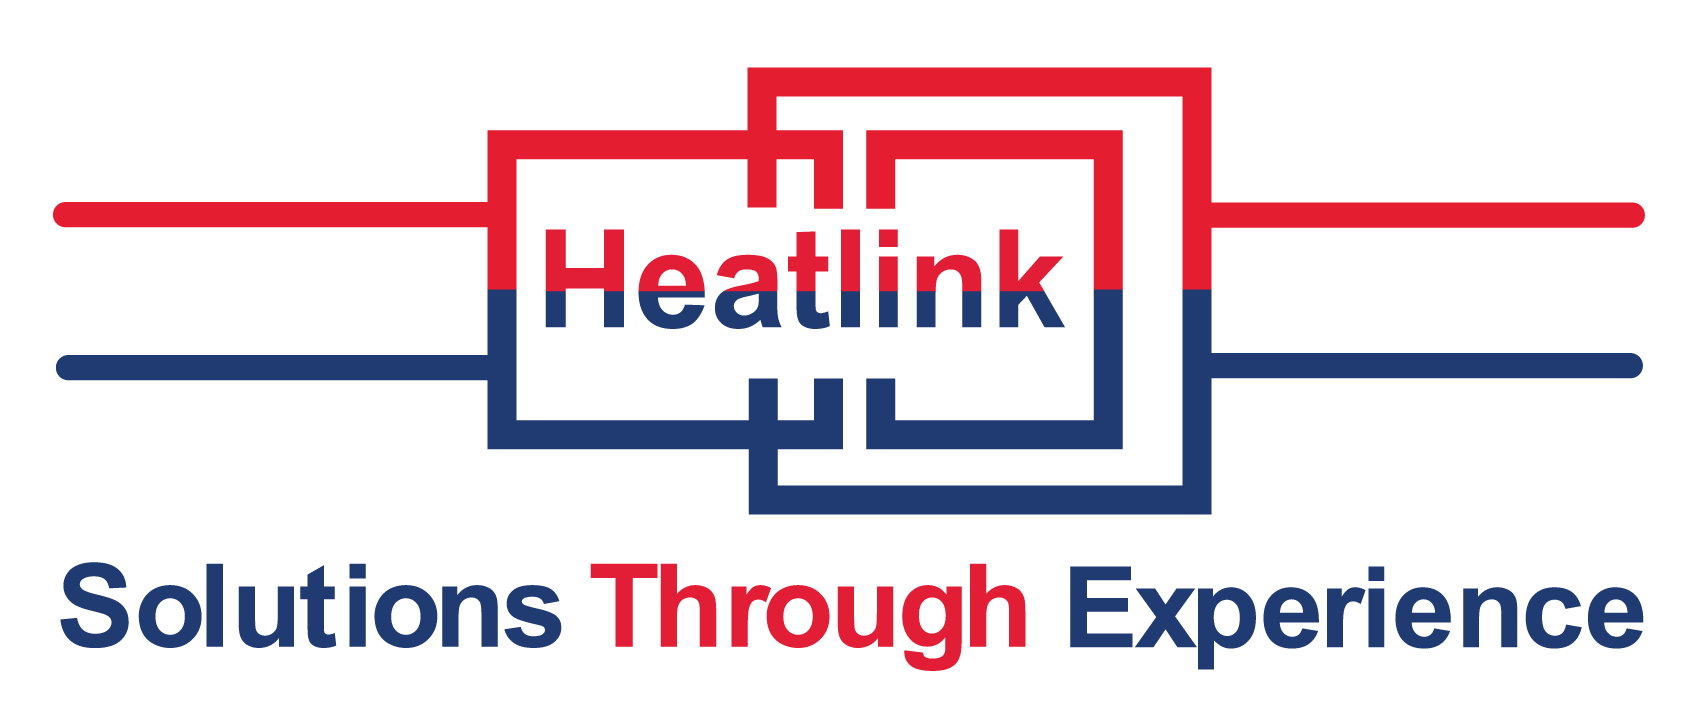 HEATLINK LOGO - Care Homes